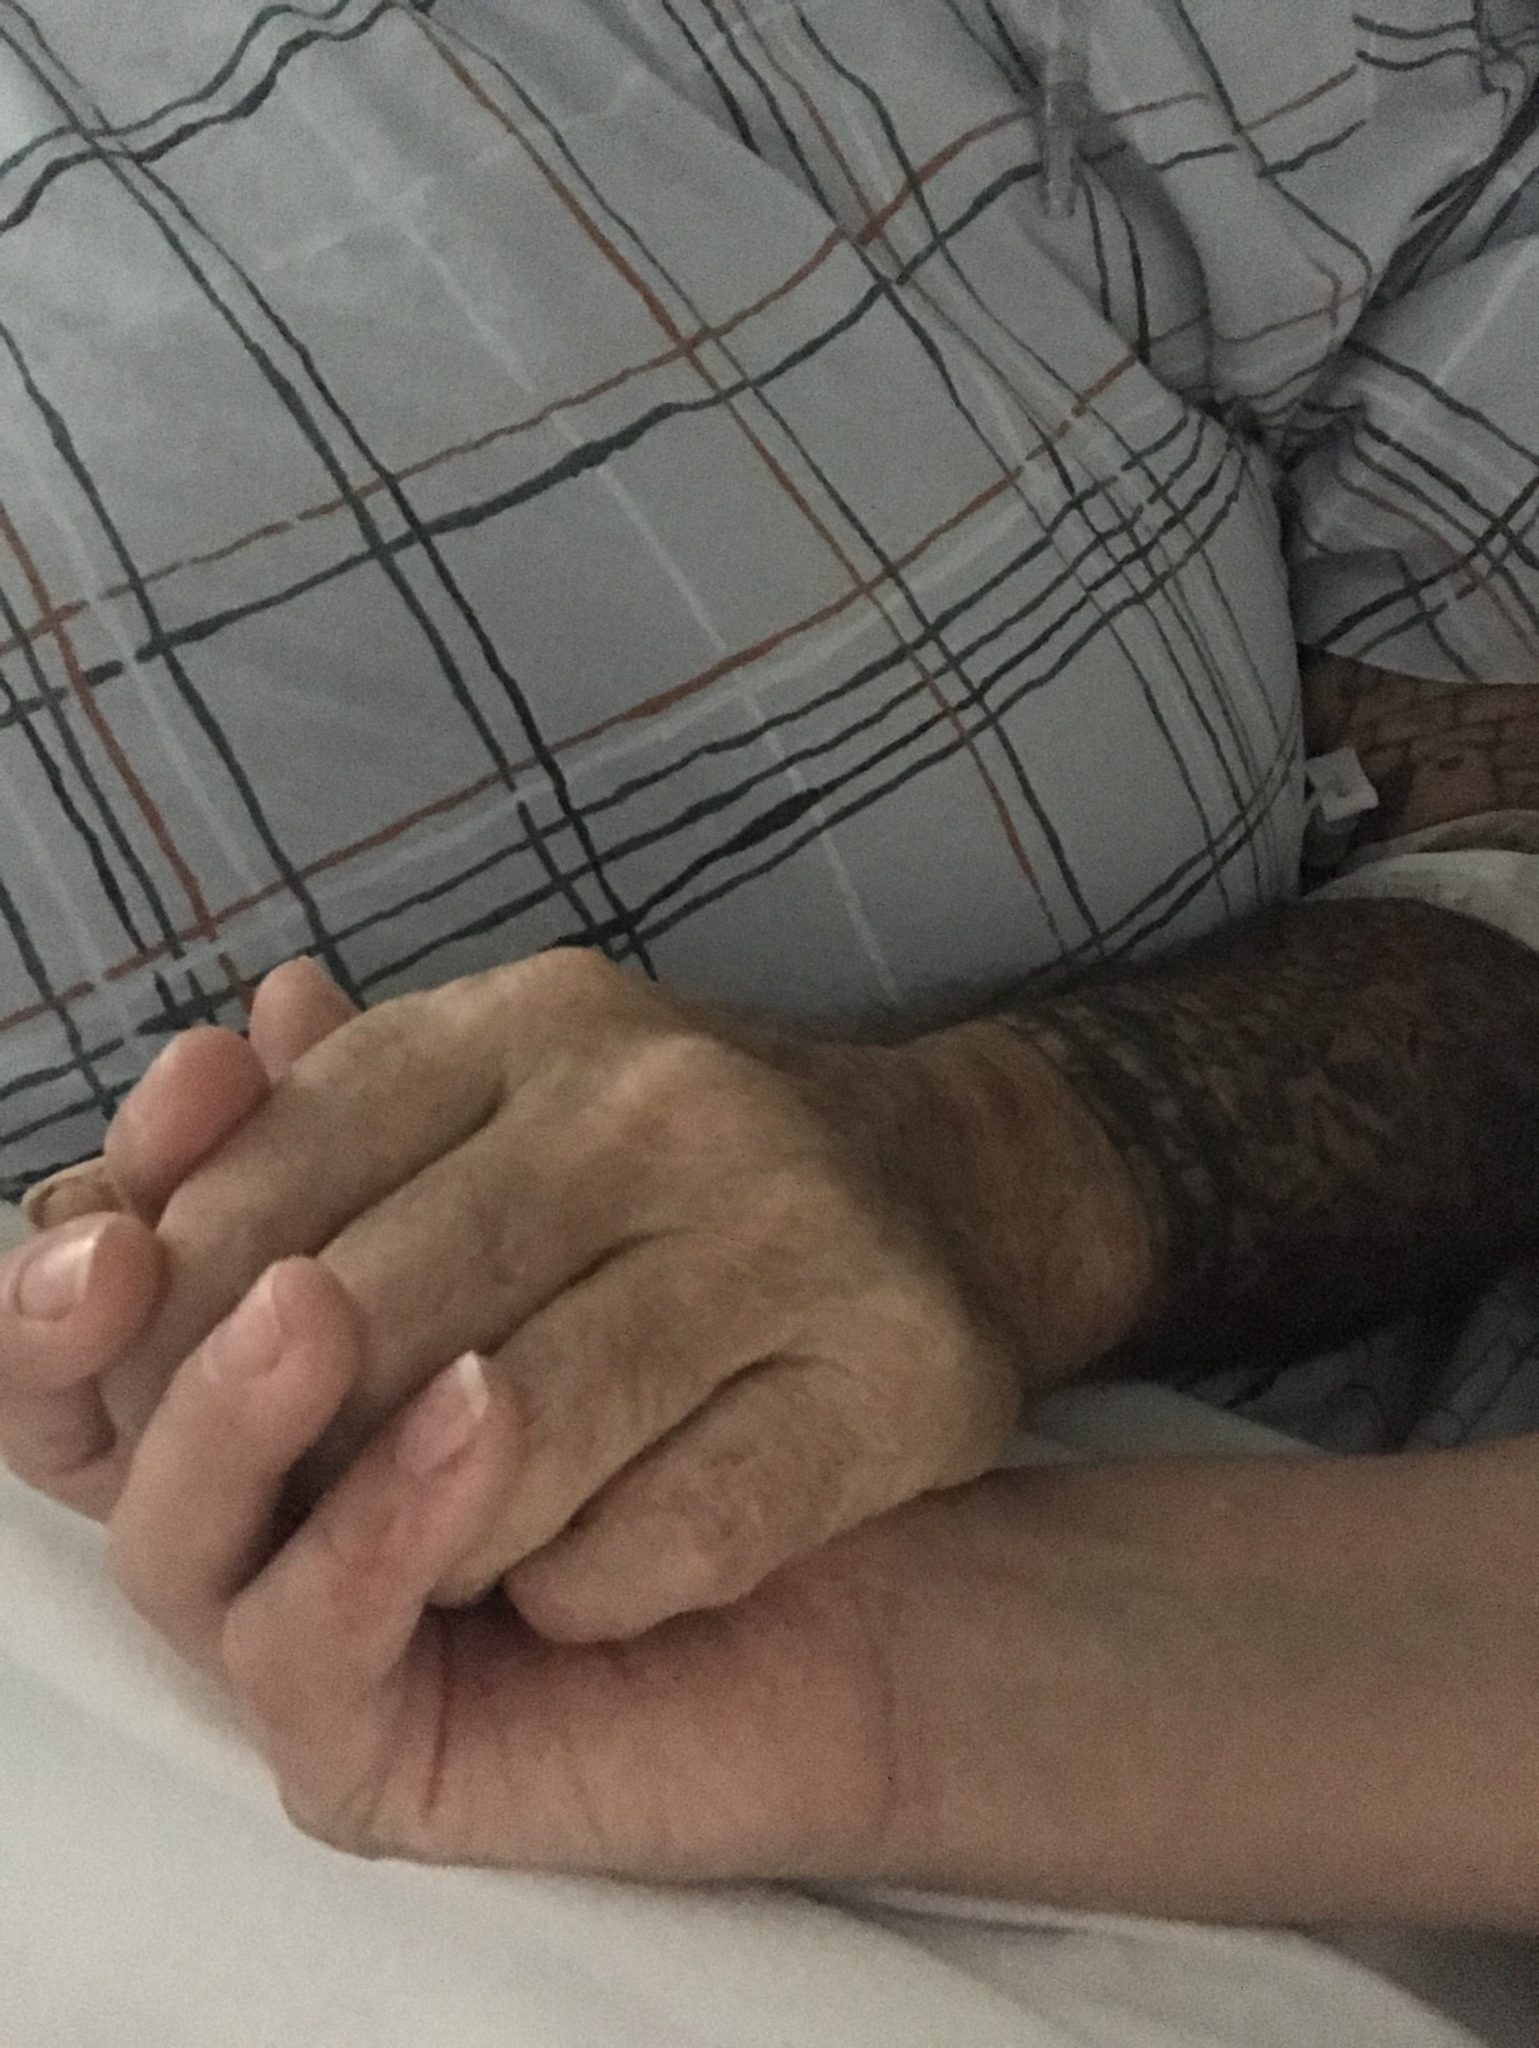 Holding Deans hand in Hospice